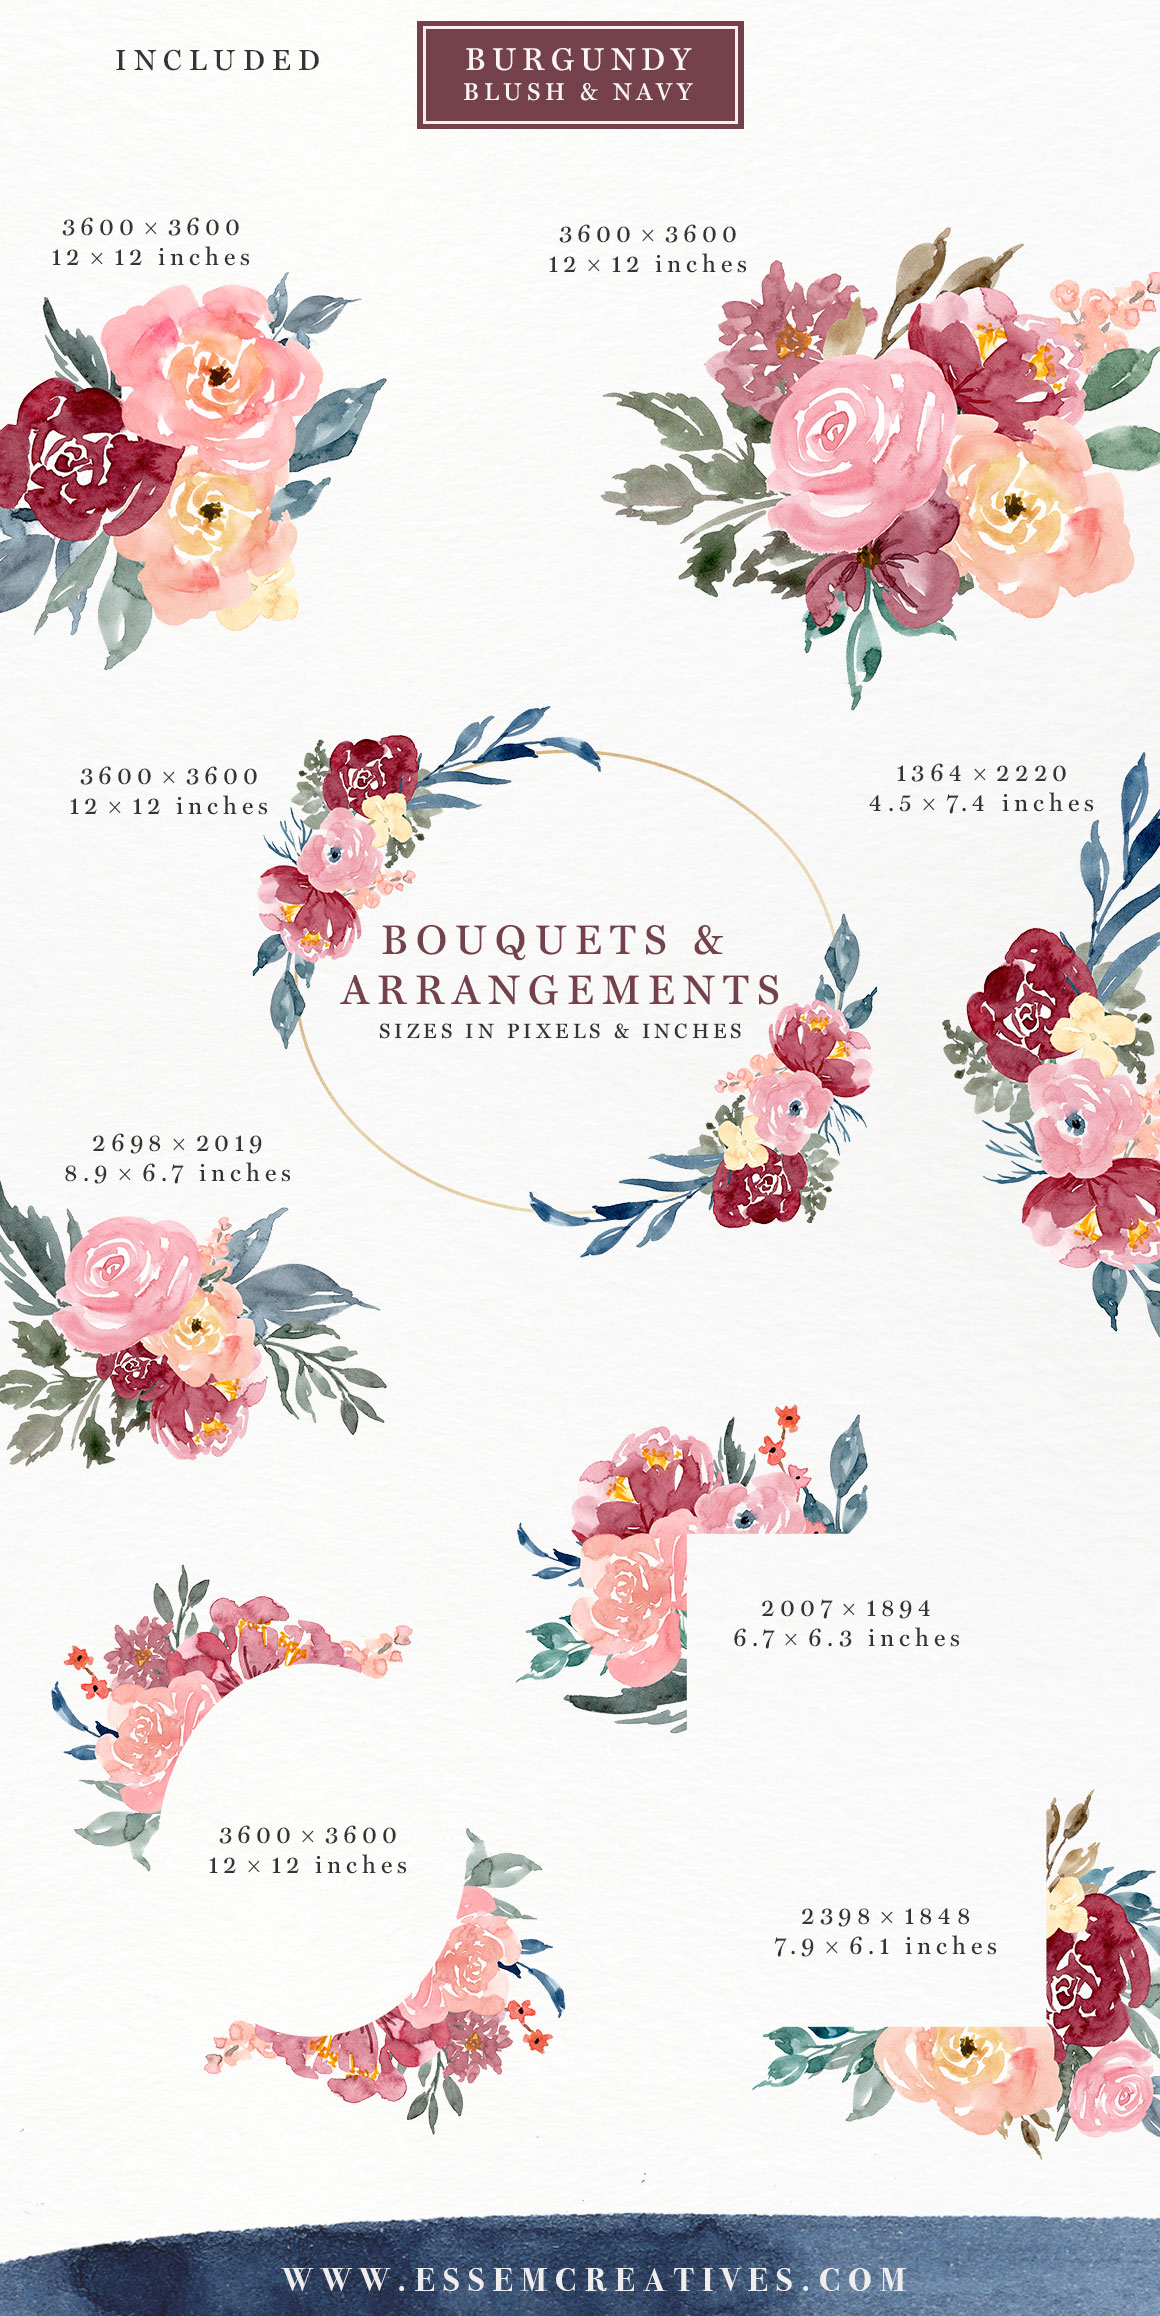 Burgundy blush navy watercolor. B clipart floral